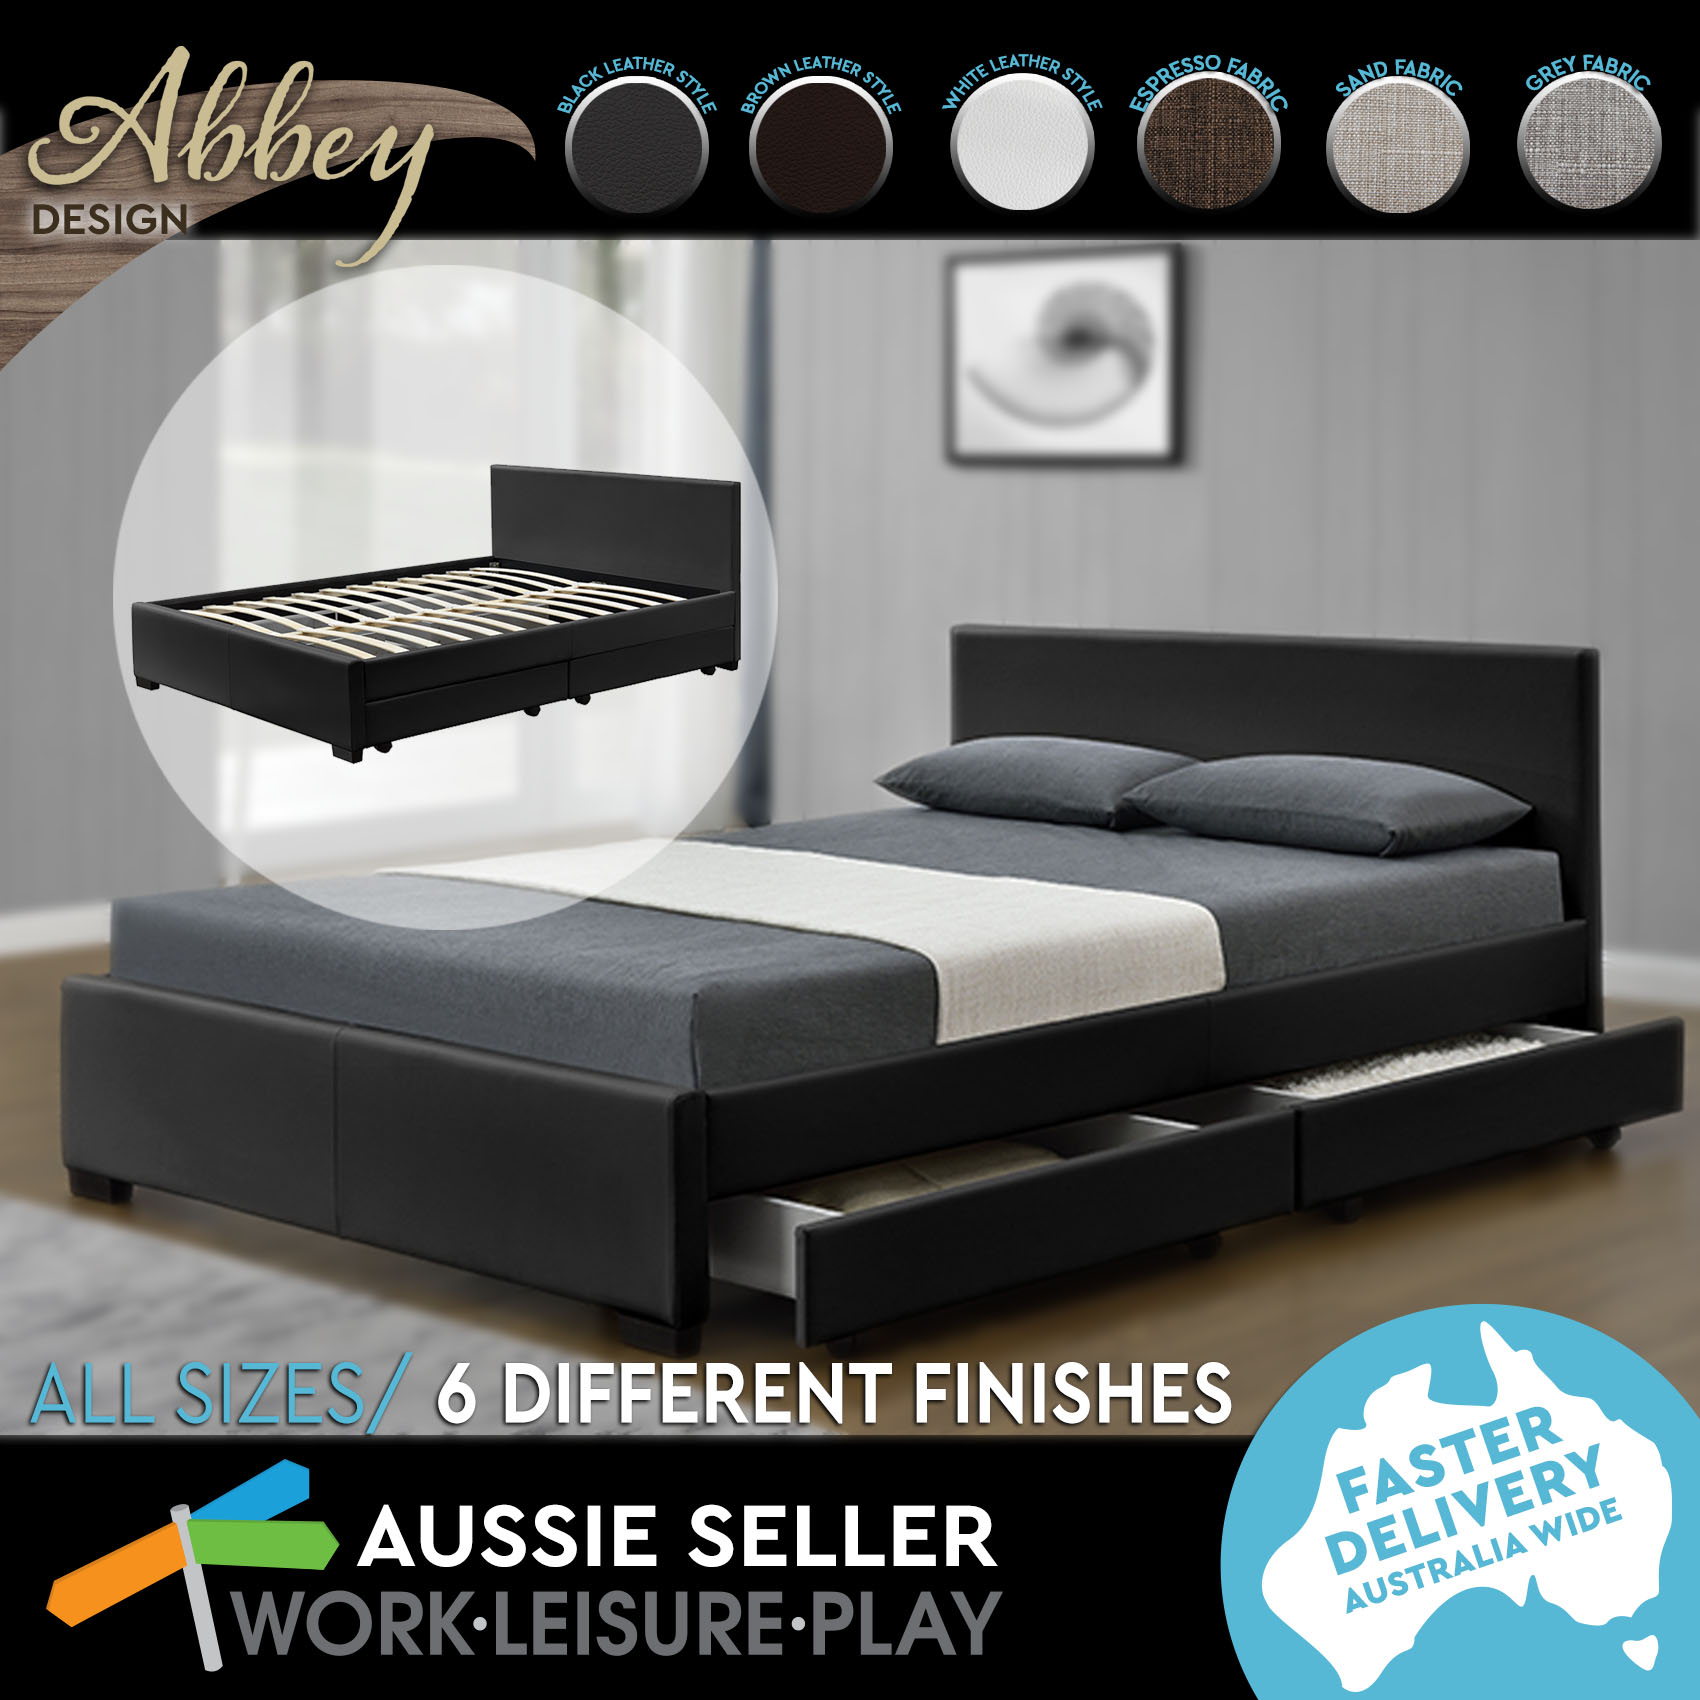 Abbey King & Queen Size Bed Frame in 6 Fabrics Colours